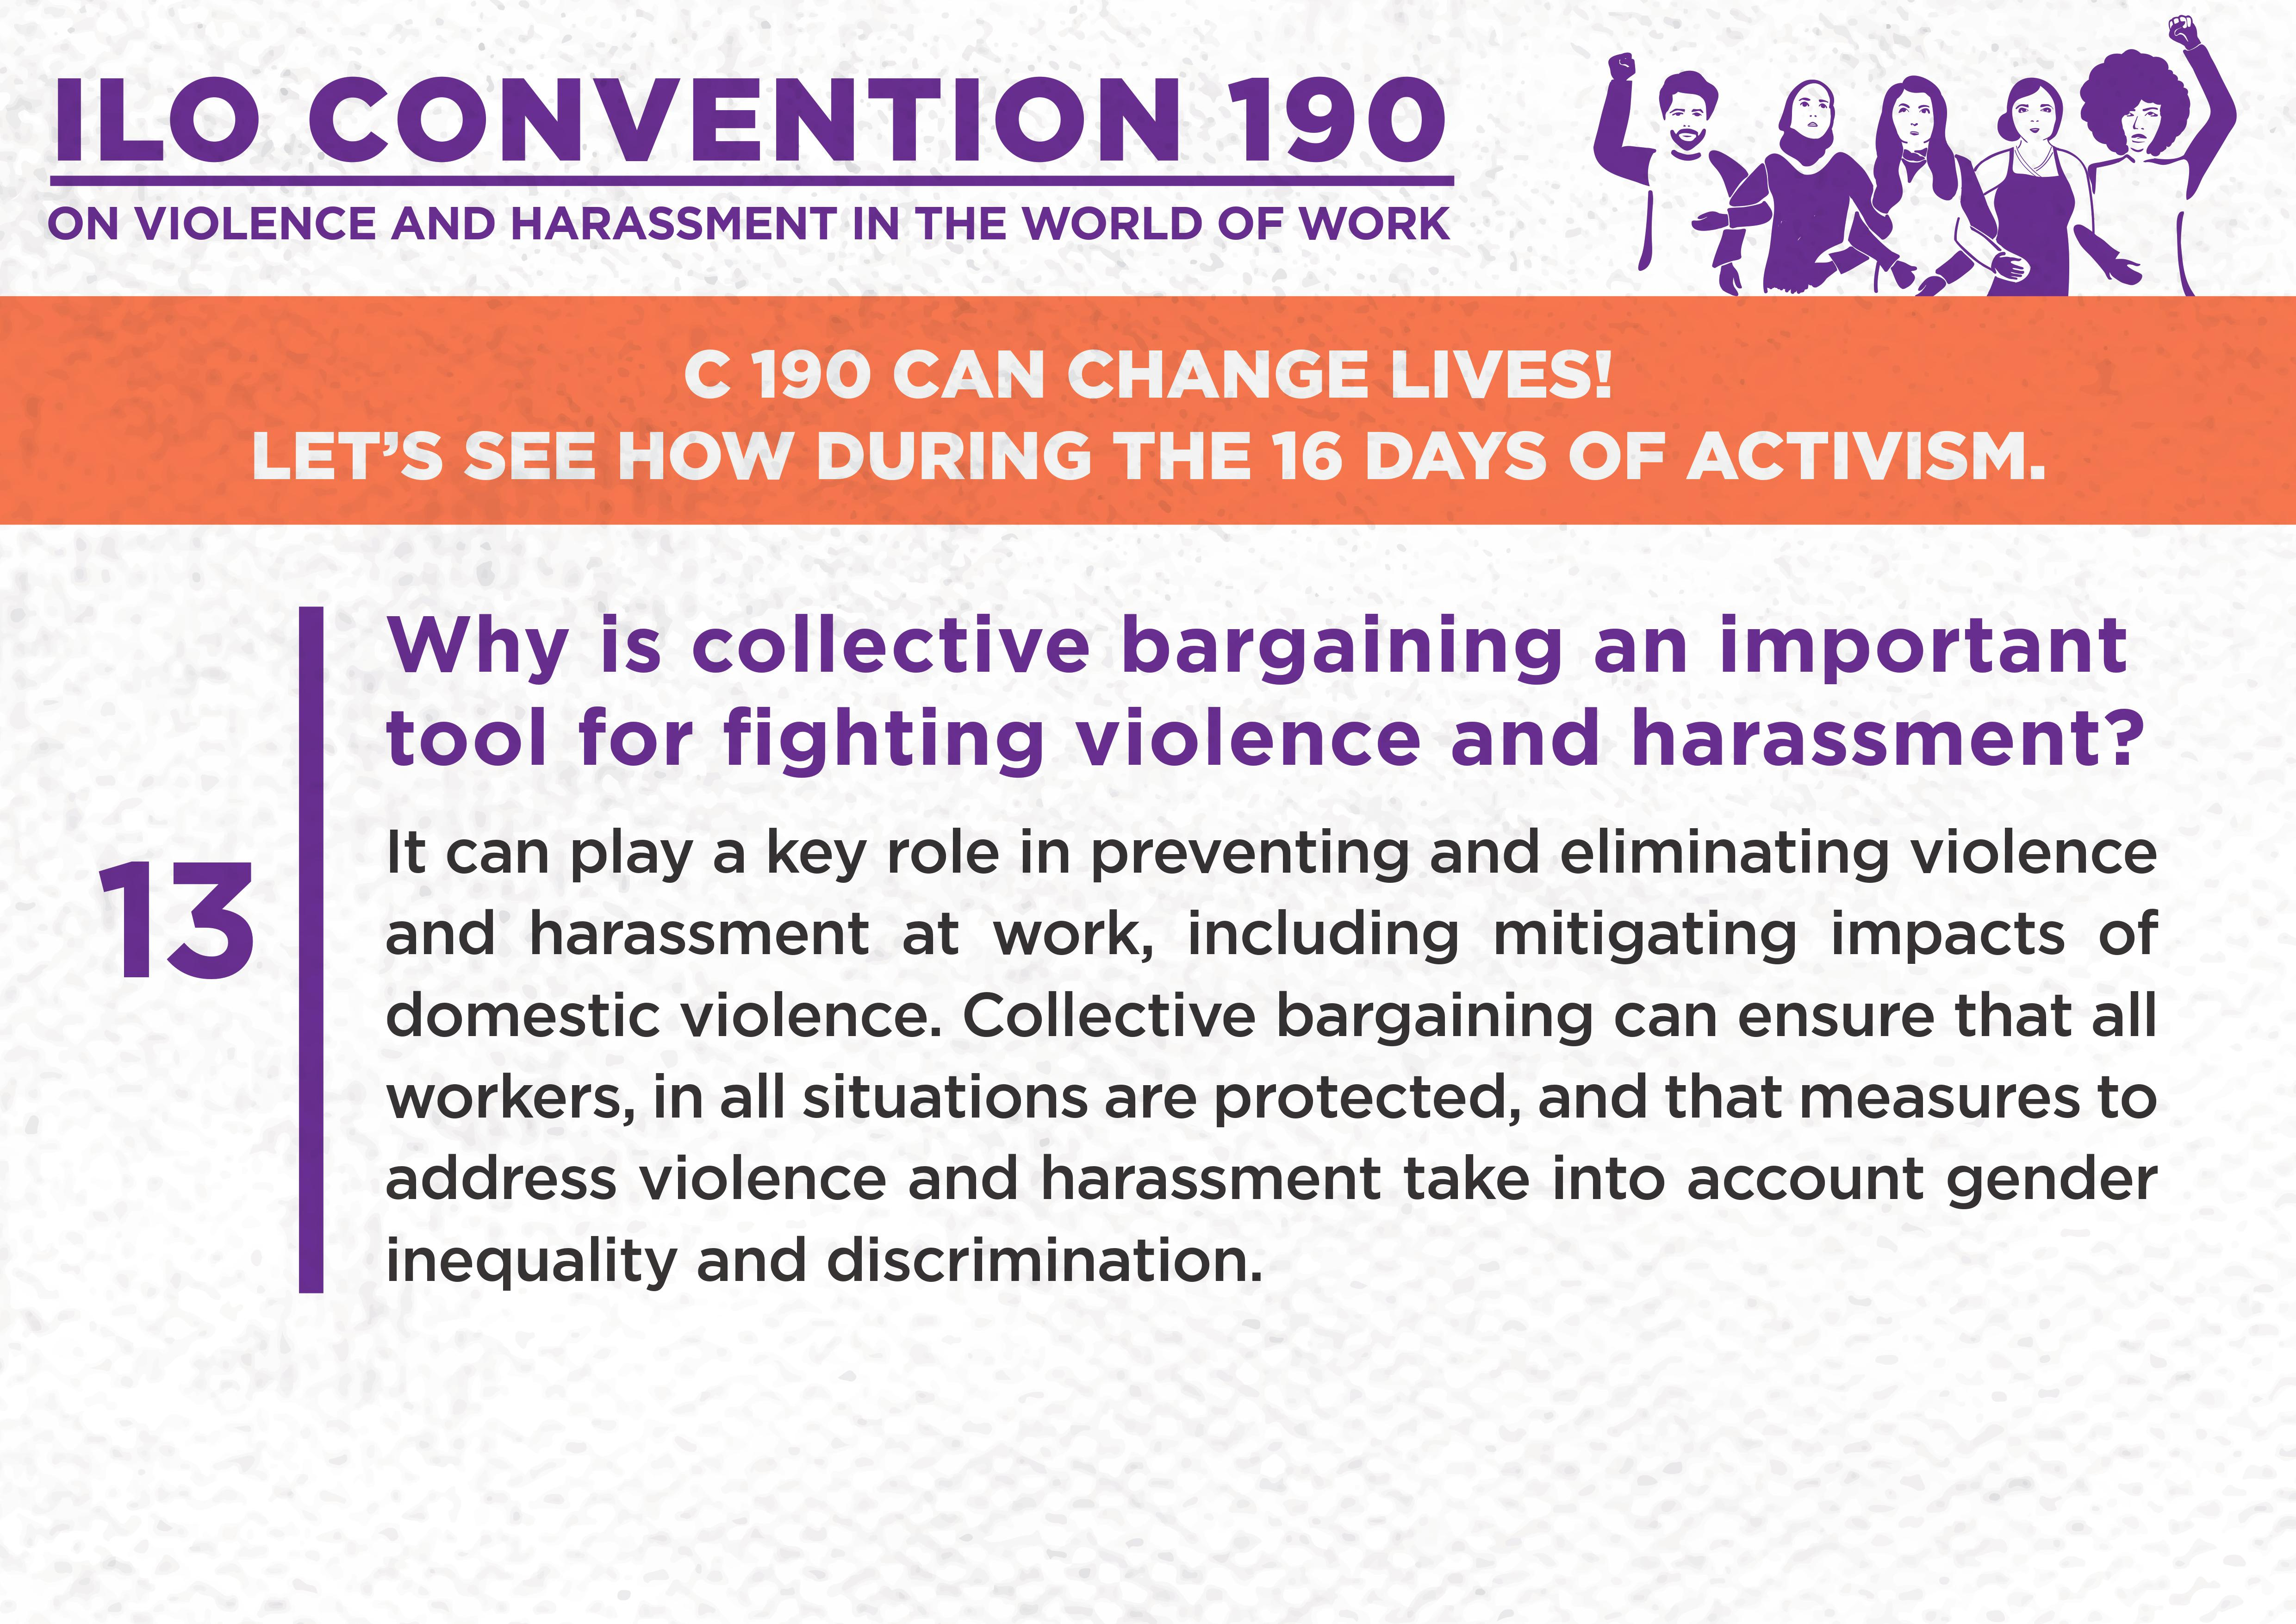 13. Why is collective bargaining an important tool for fighting violence and harassment?